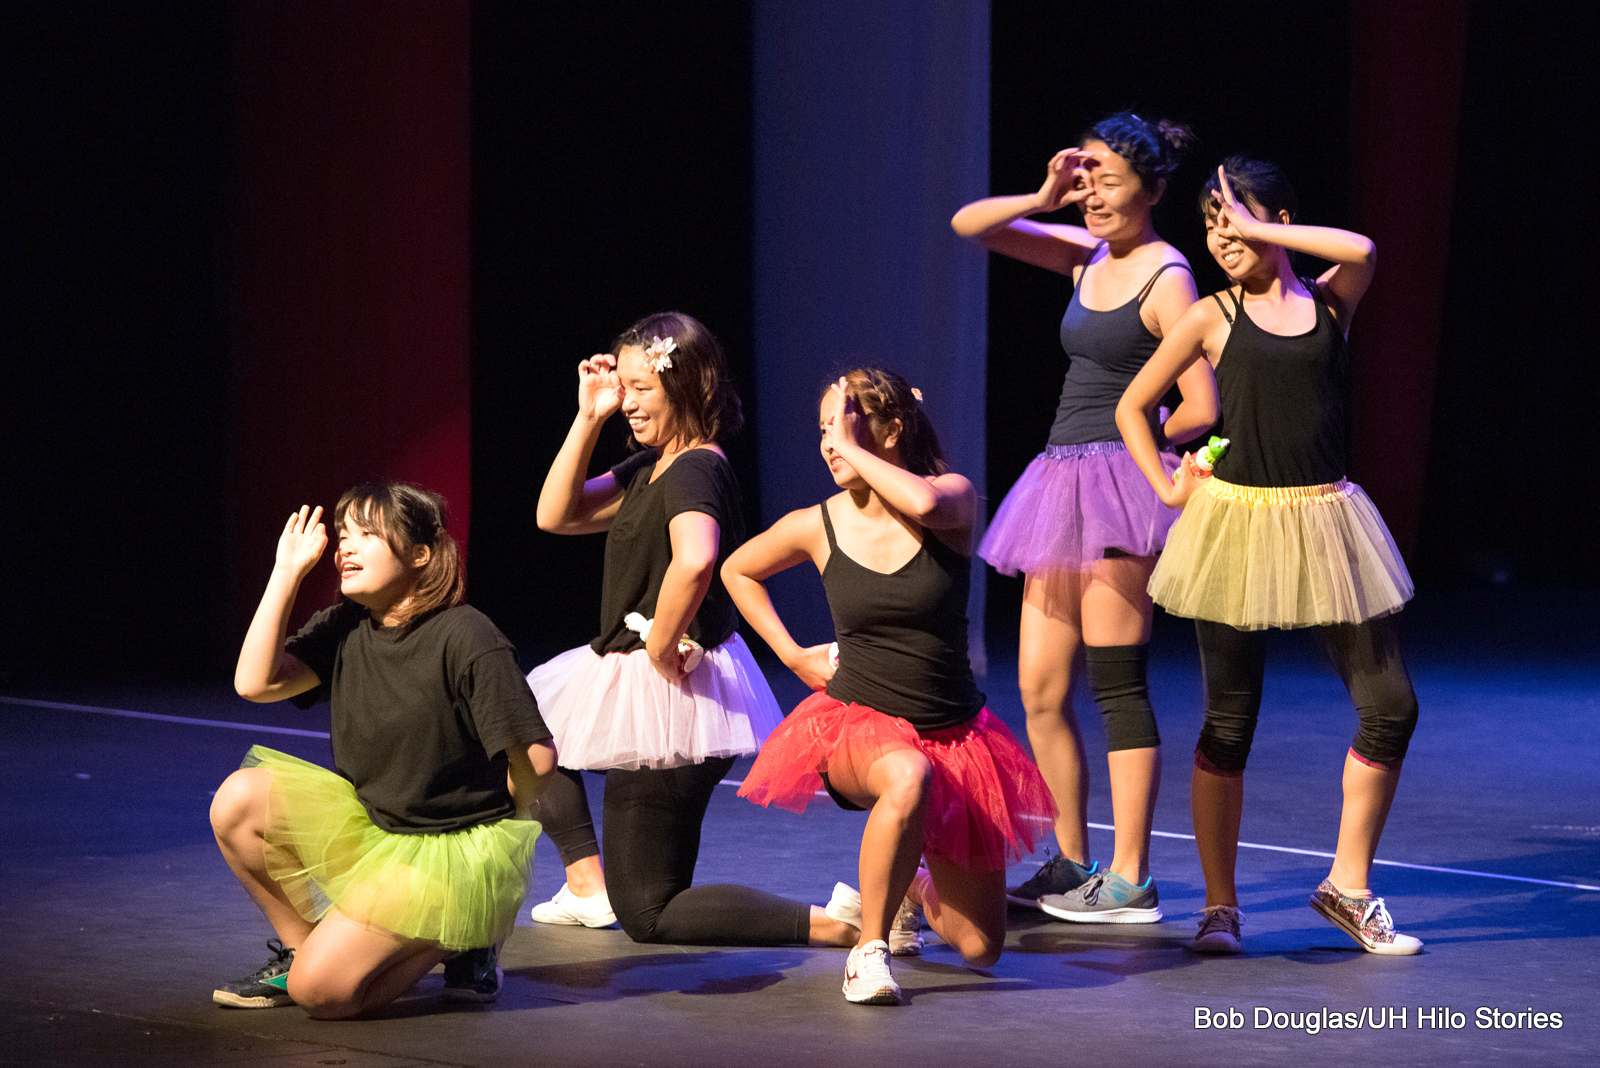 Five young women in black leotards with colorful tutus, leaping in air with hands extended overhead, joyful expressions.